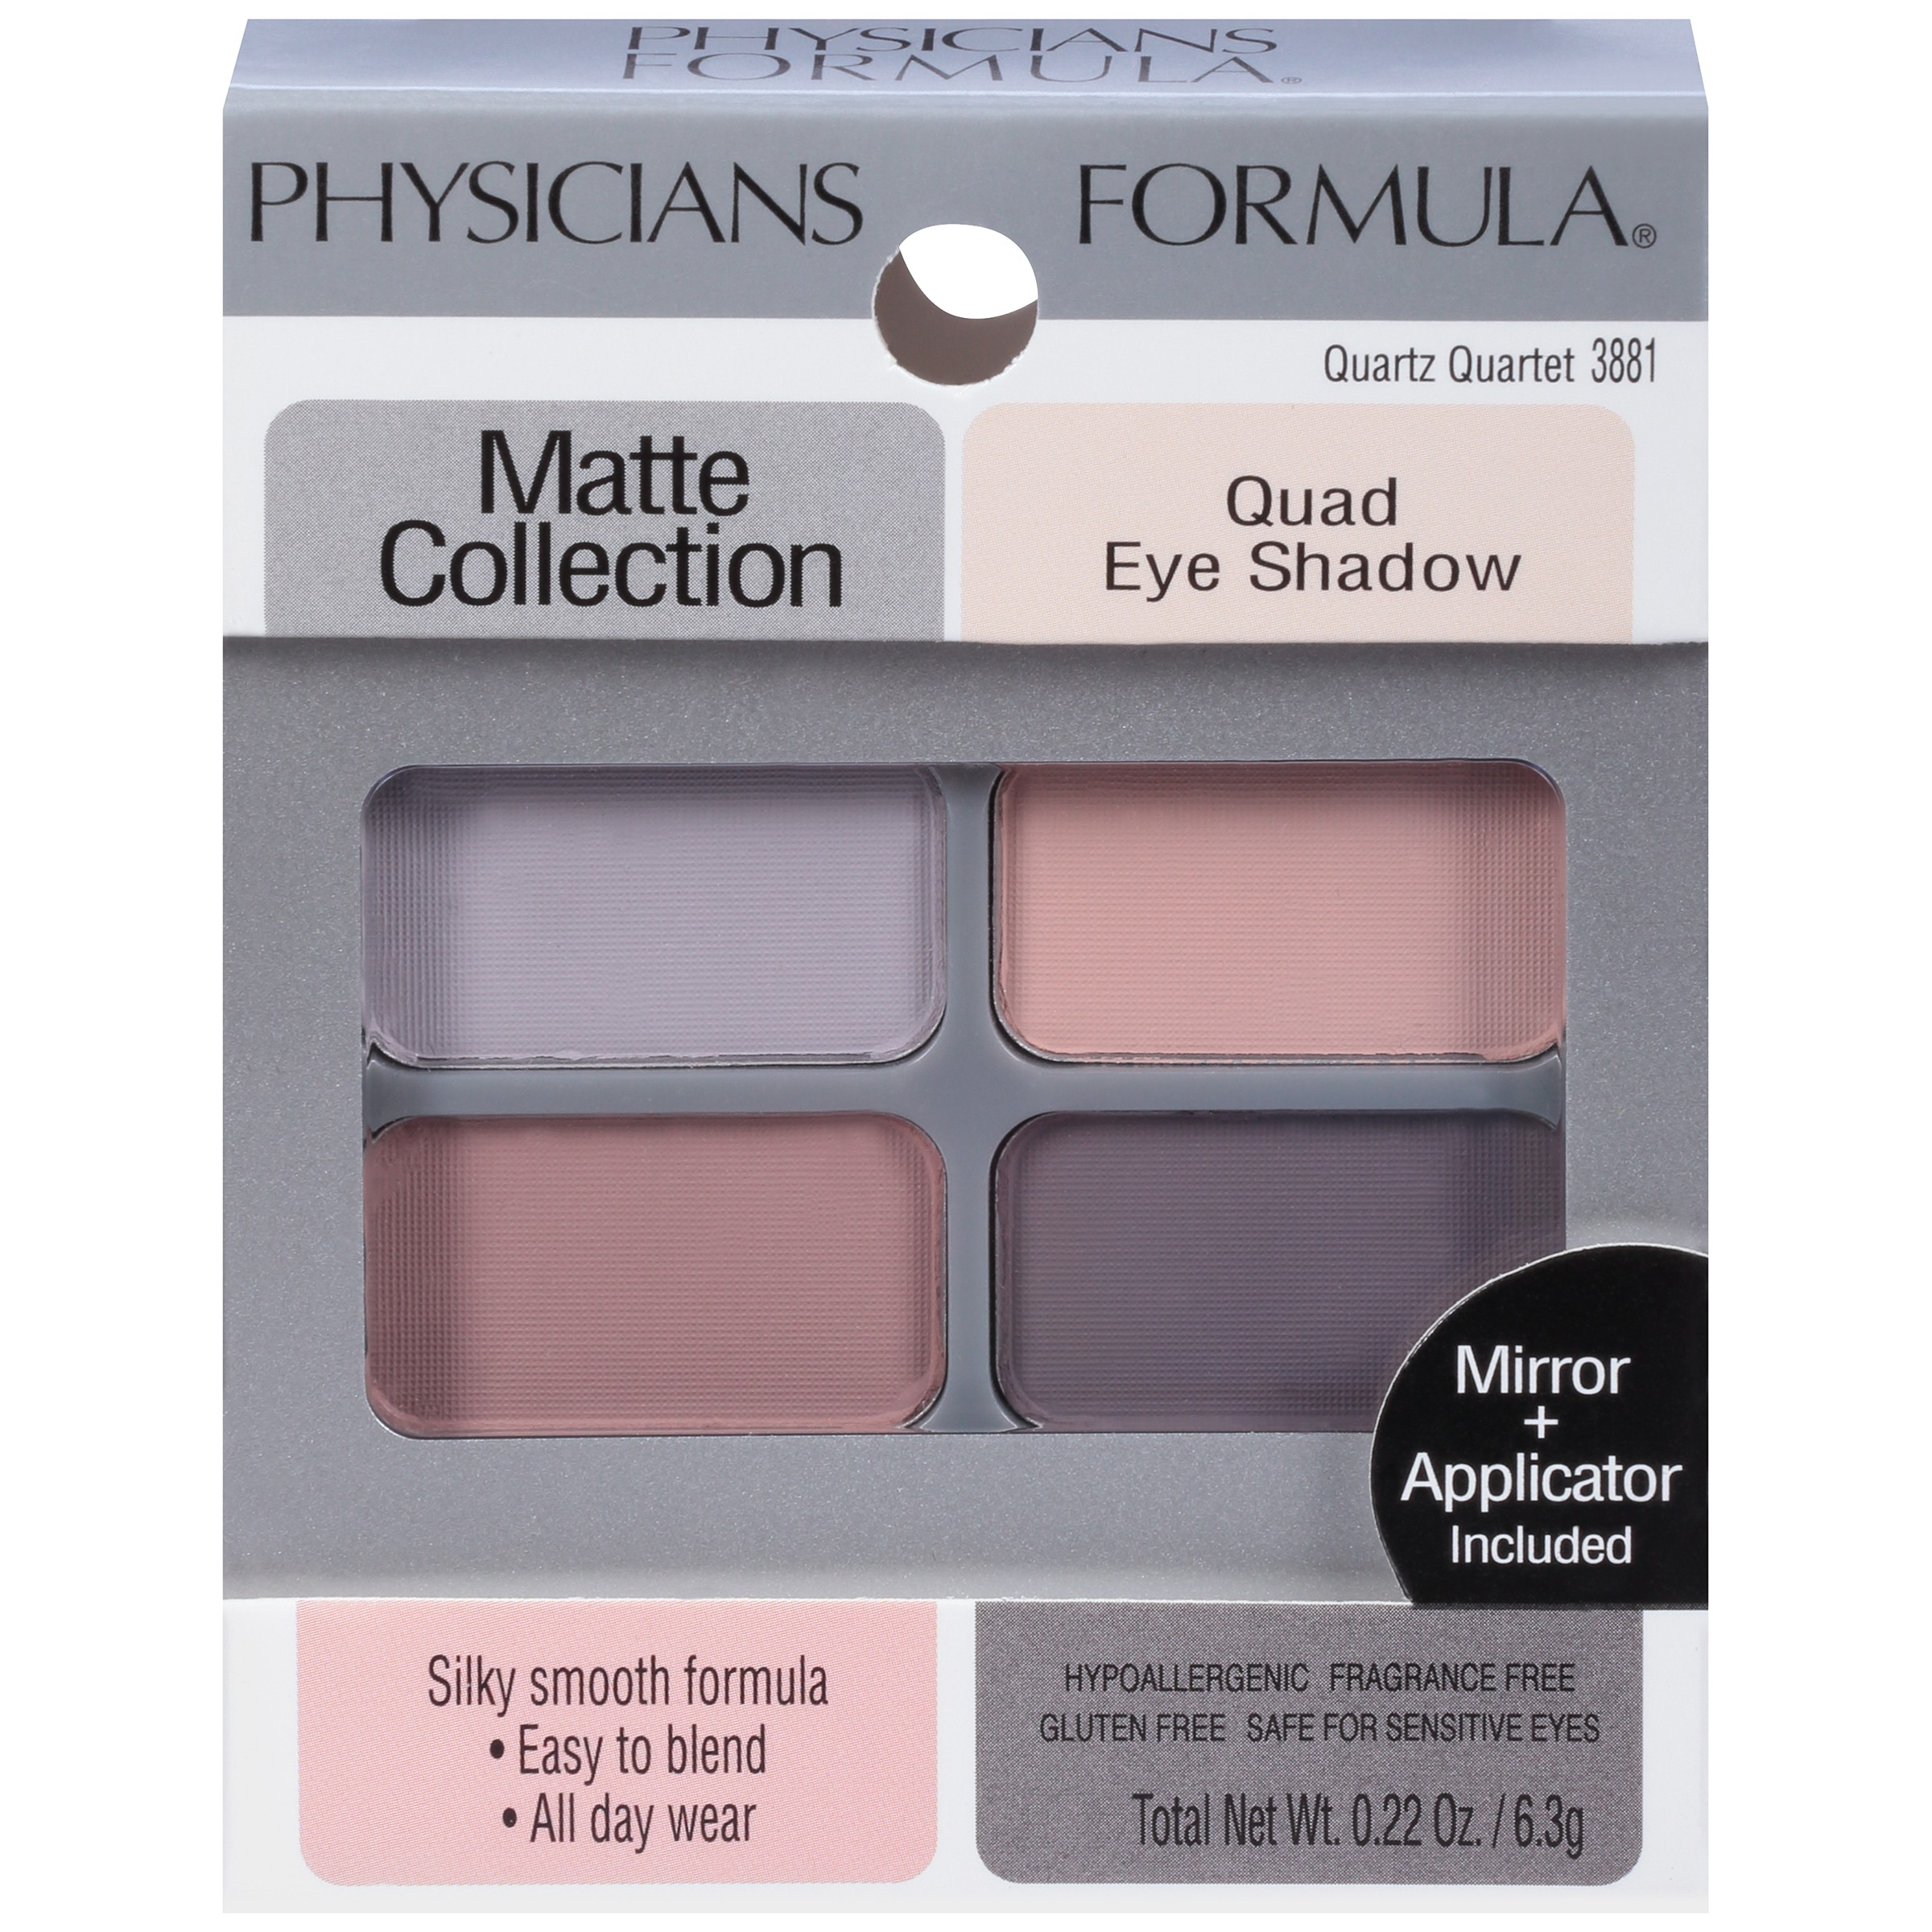 Physicians Formula Matte Collection Quad Eye Shadow 022 Oz Box